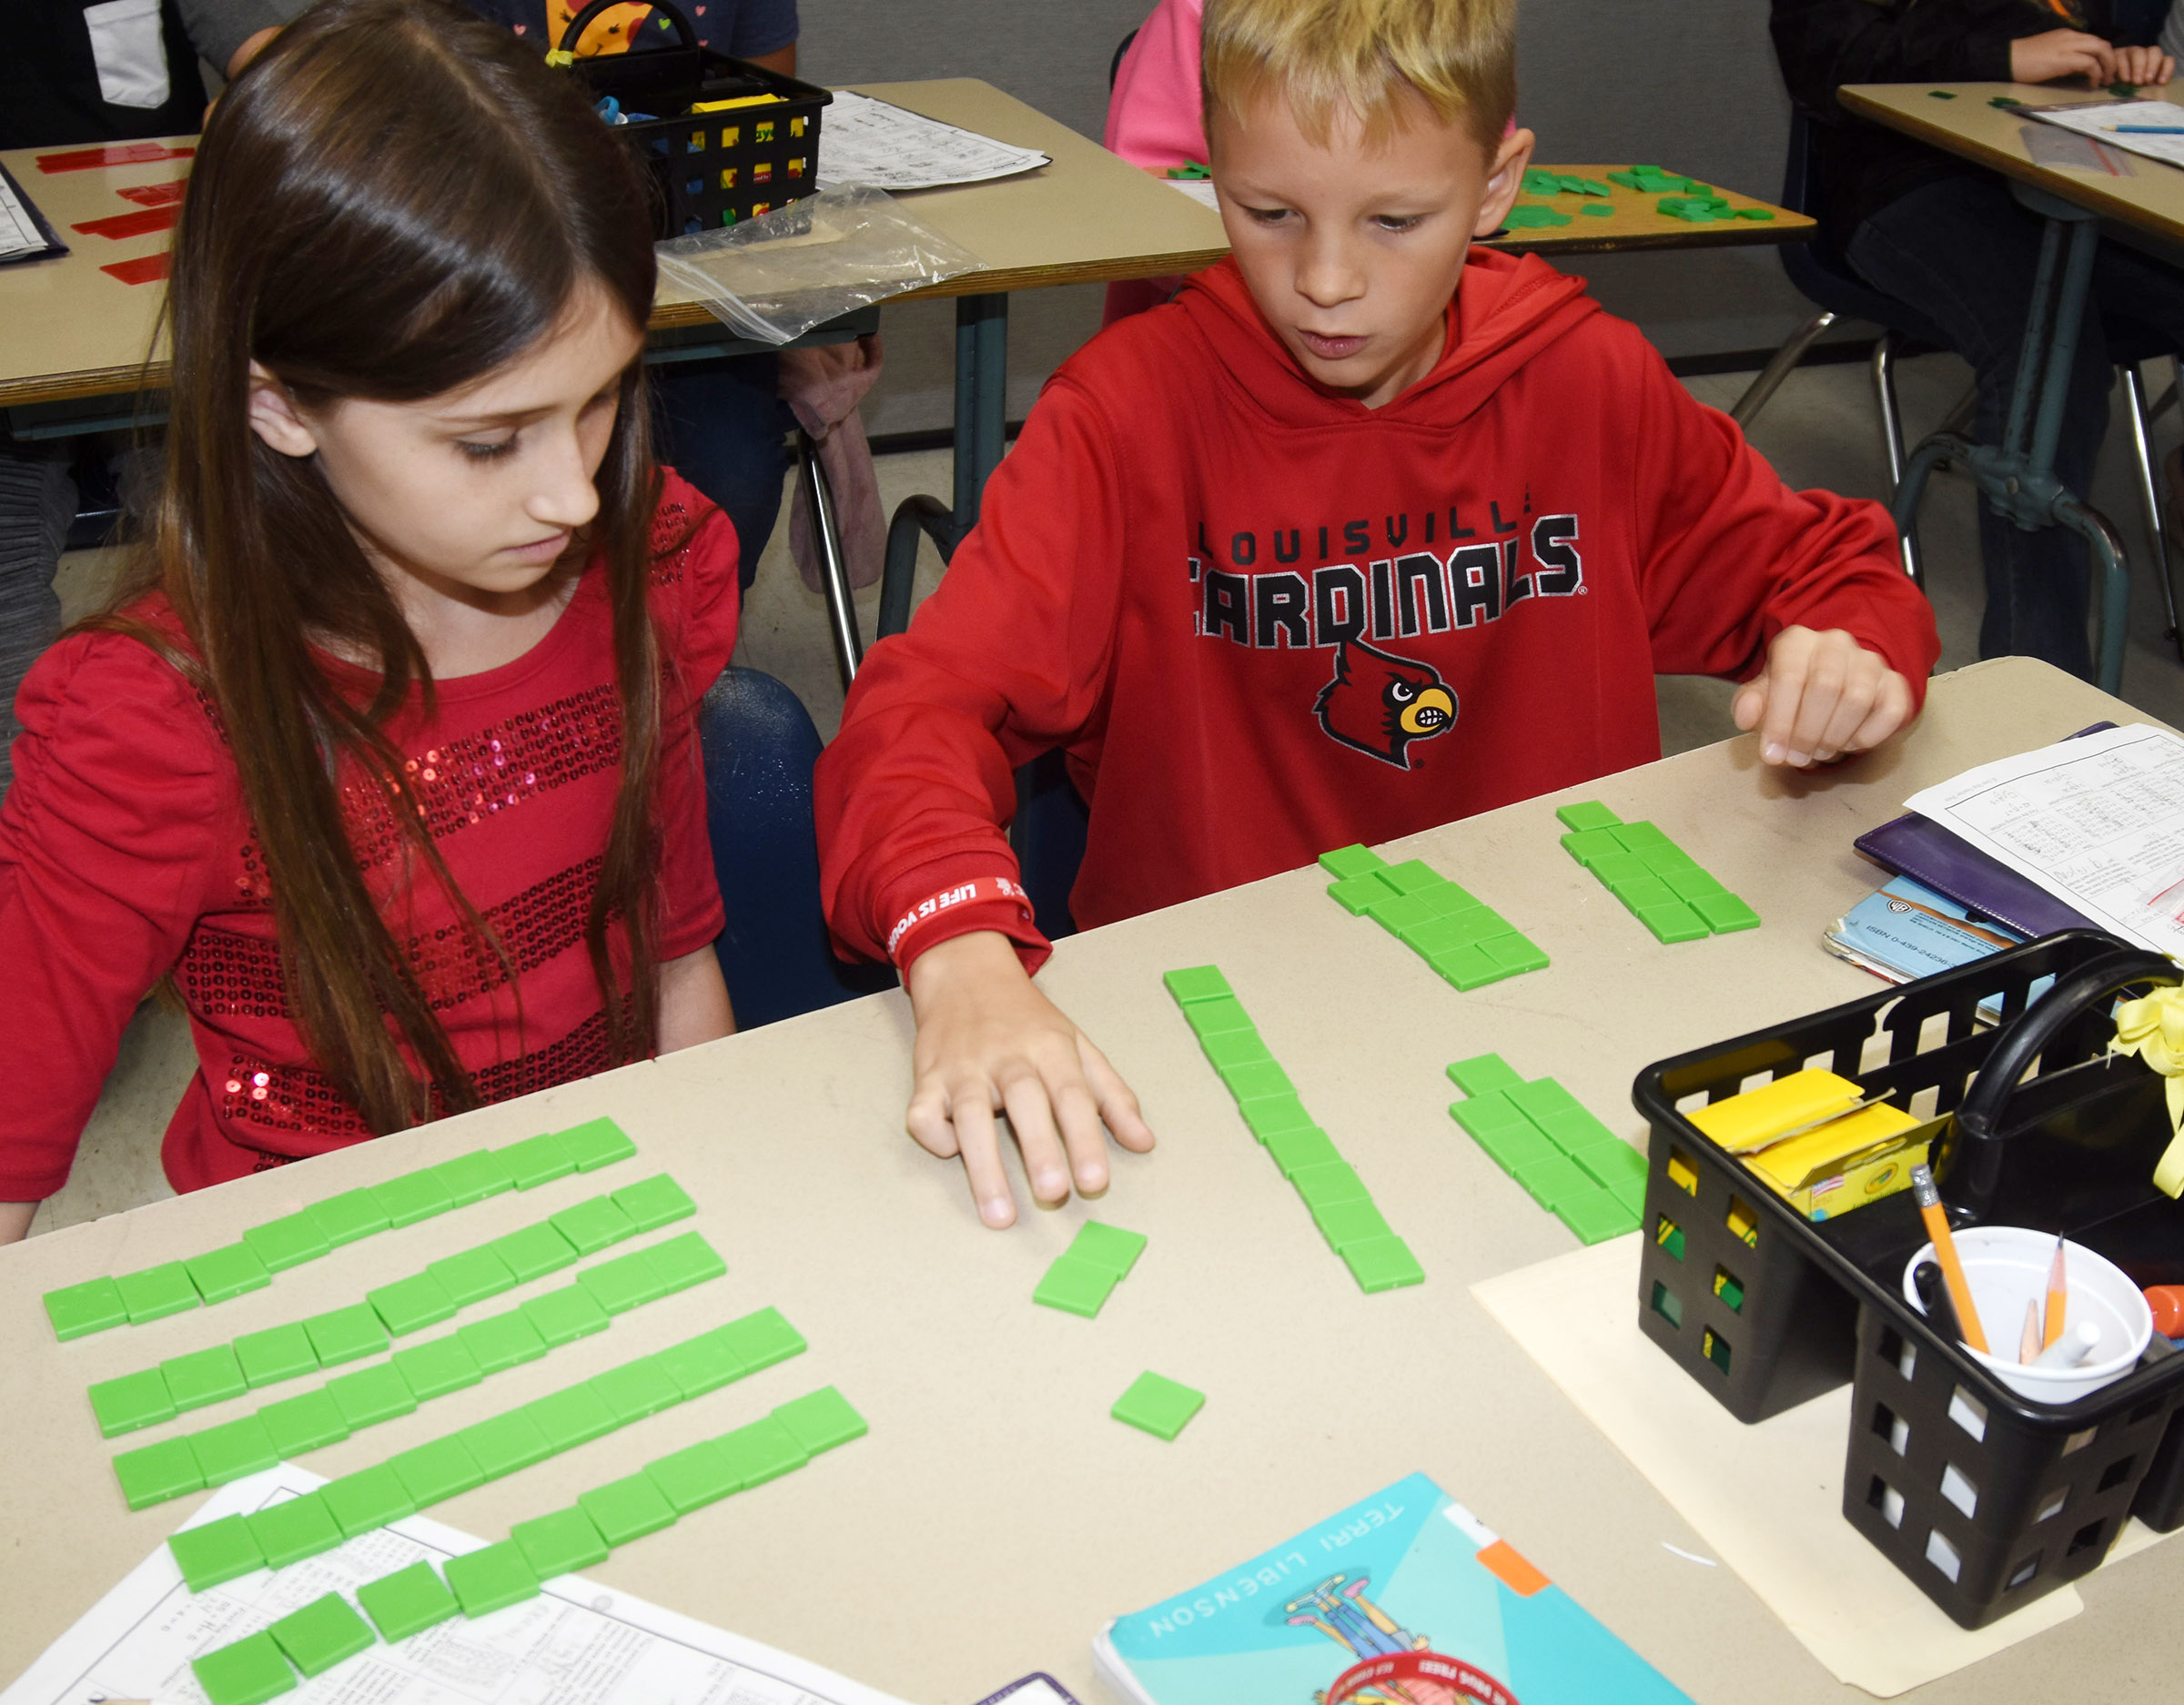 CES fourth-graders Cadence Burton, at left, and Braxton Agee work a division problem with blocks.